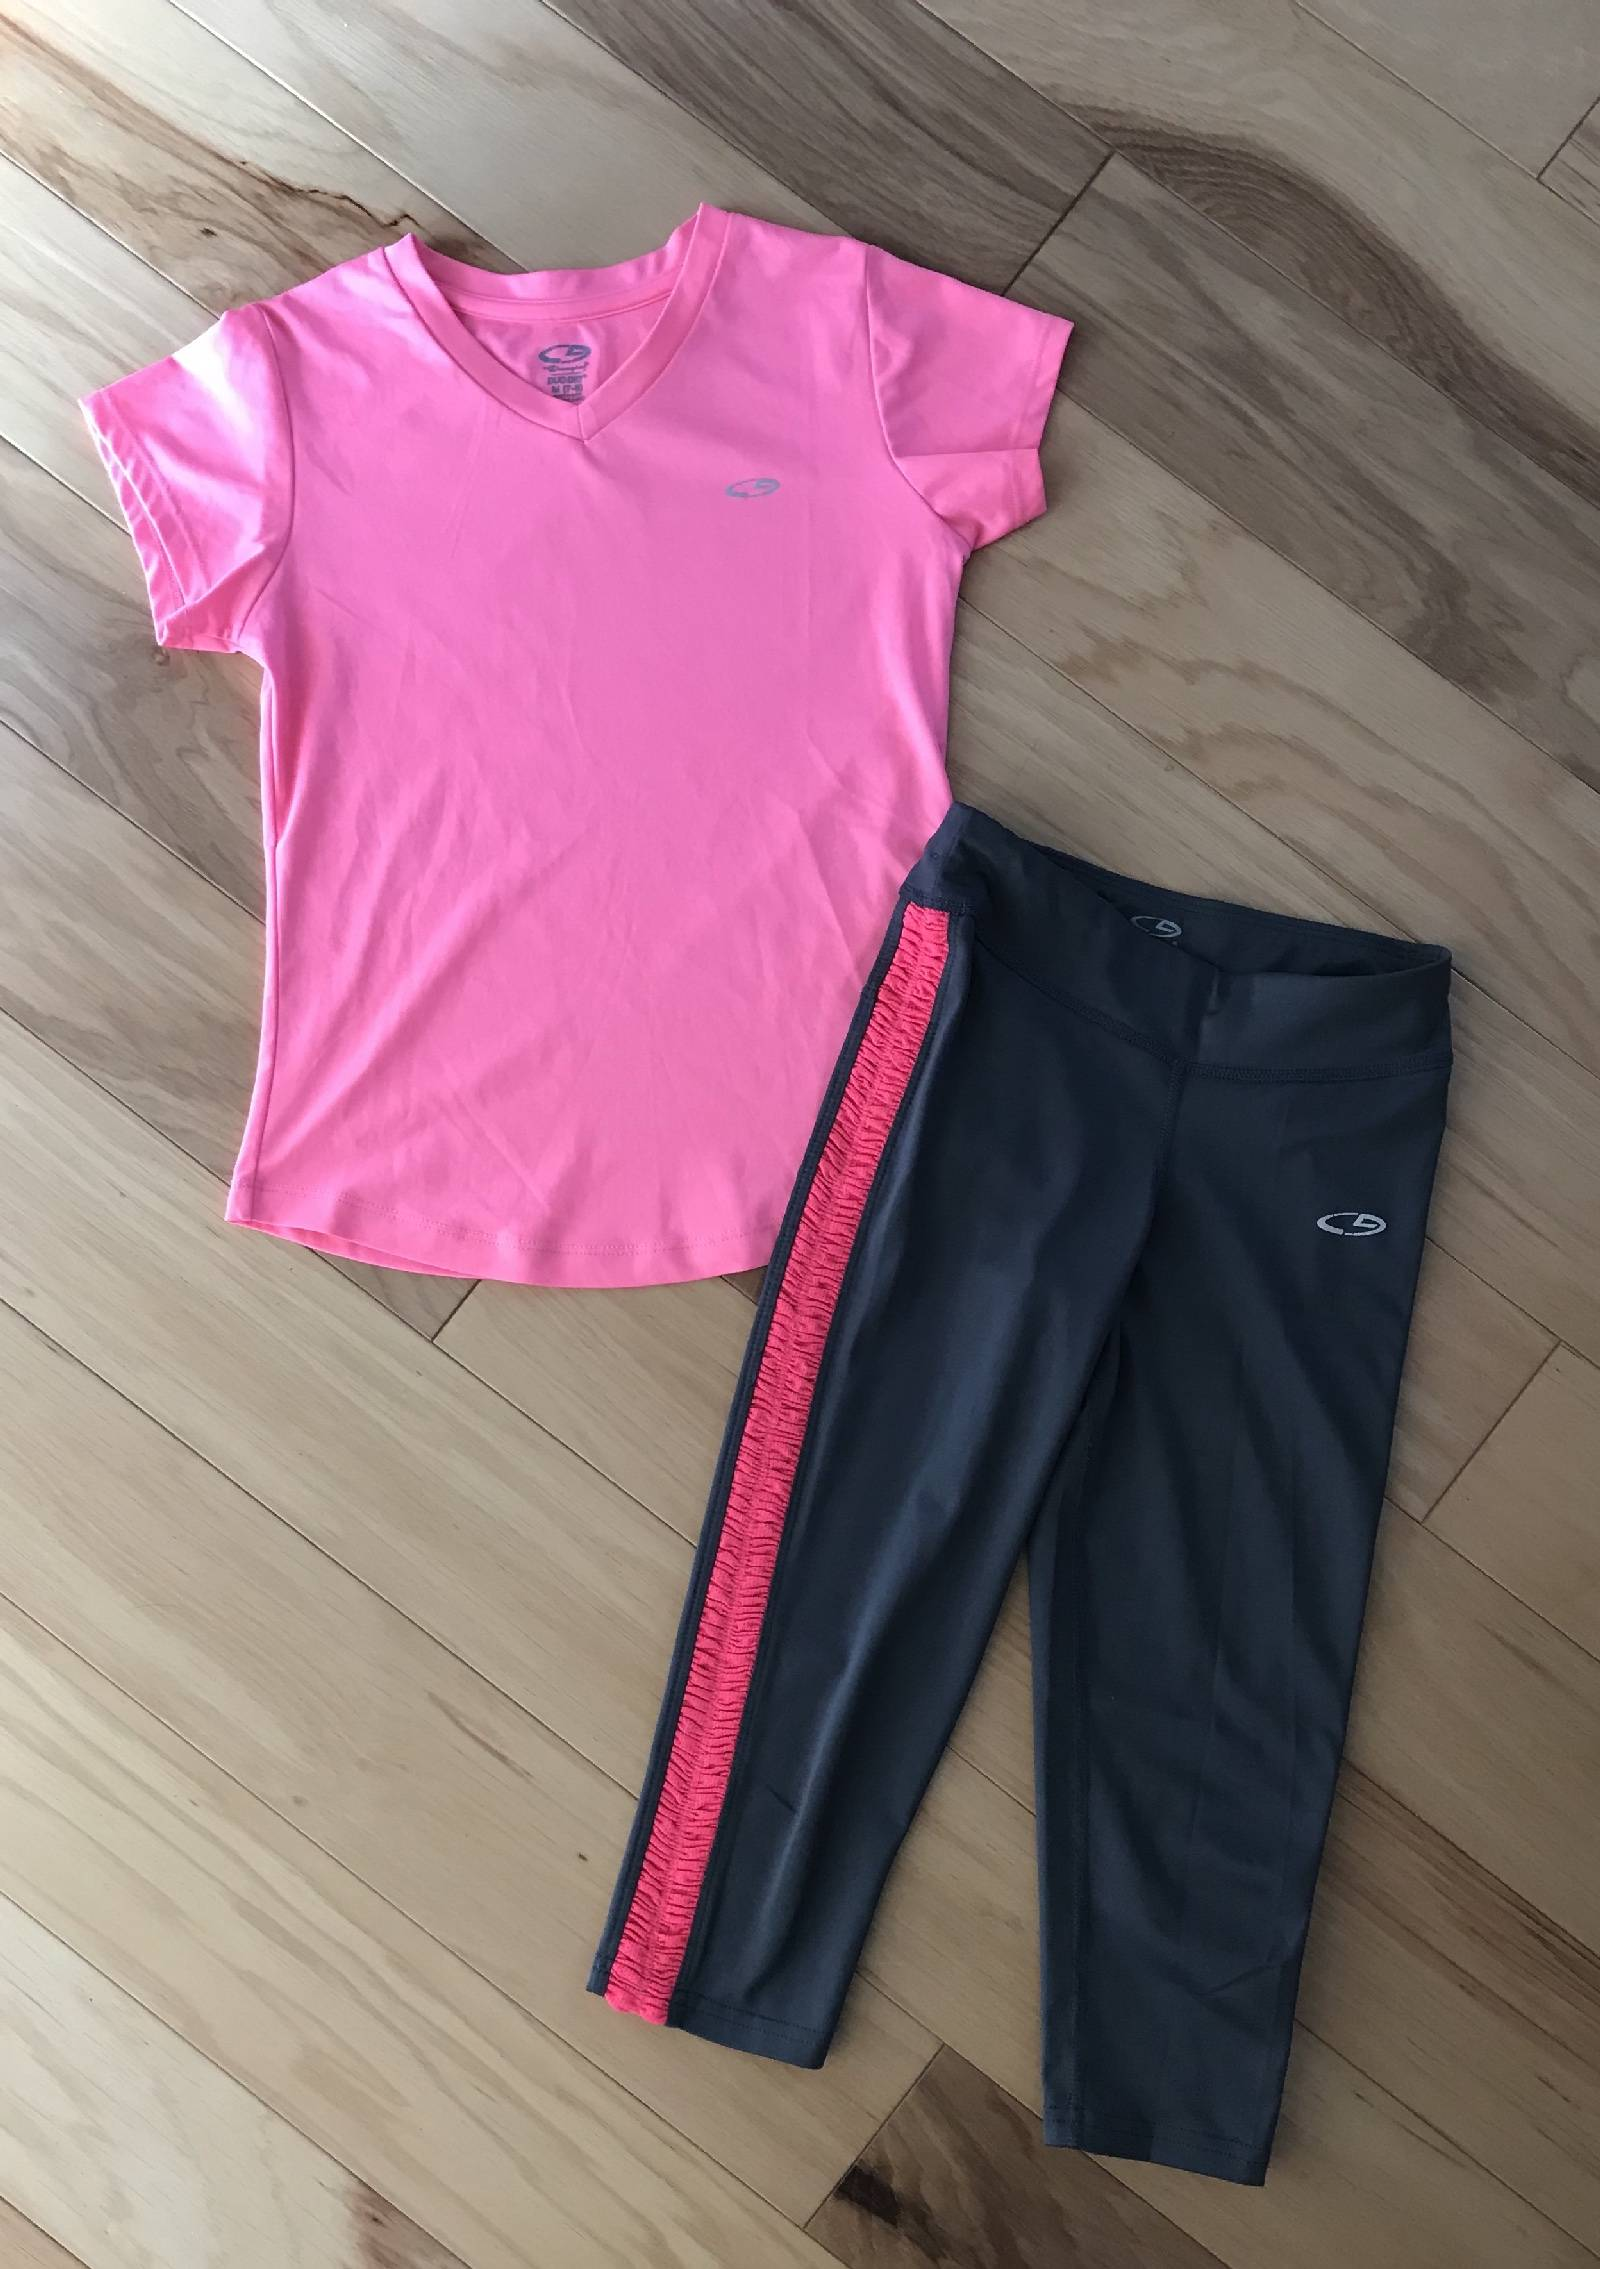 ed1faf26d48533 Here is a super cute girls two-piece tee & capri leggings from C9 Champions.